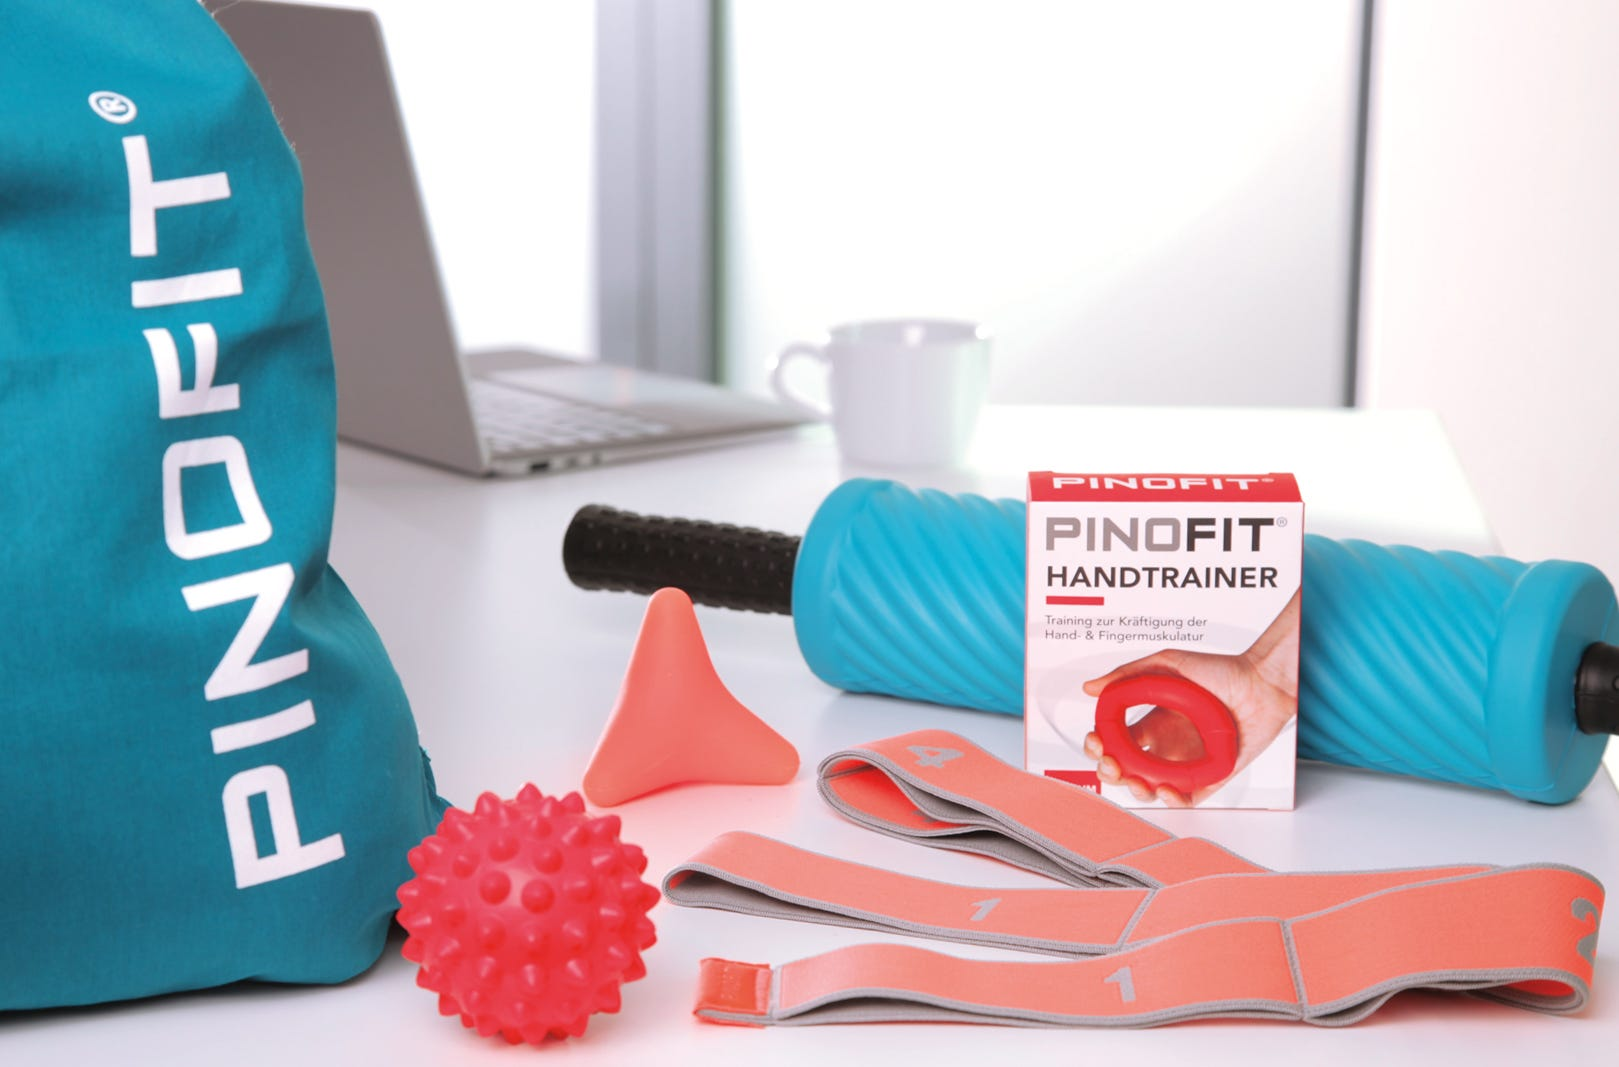 PINOFIT Set - Work@home & stay fit